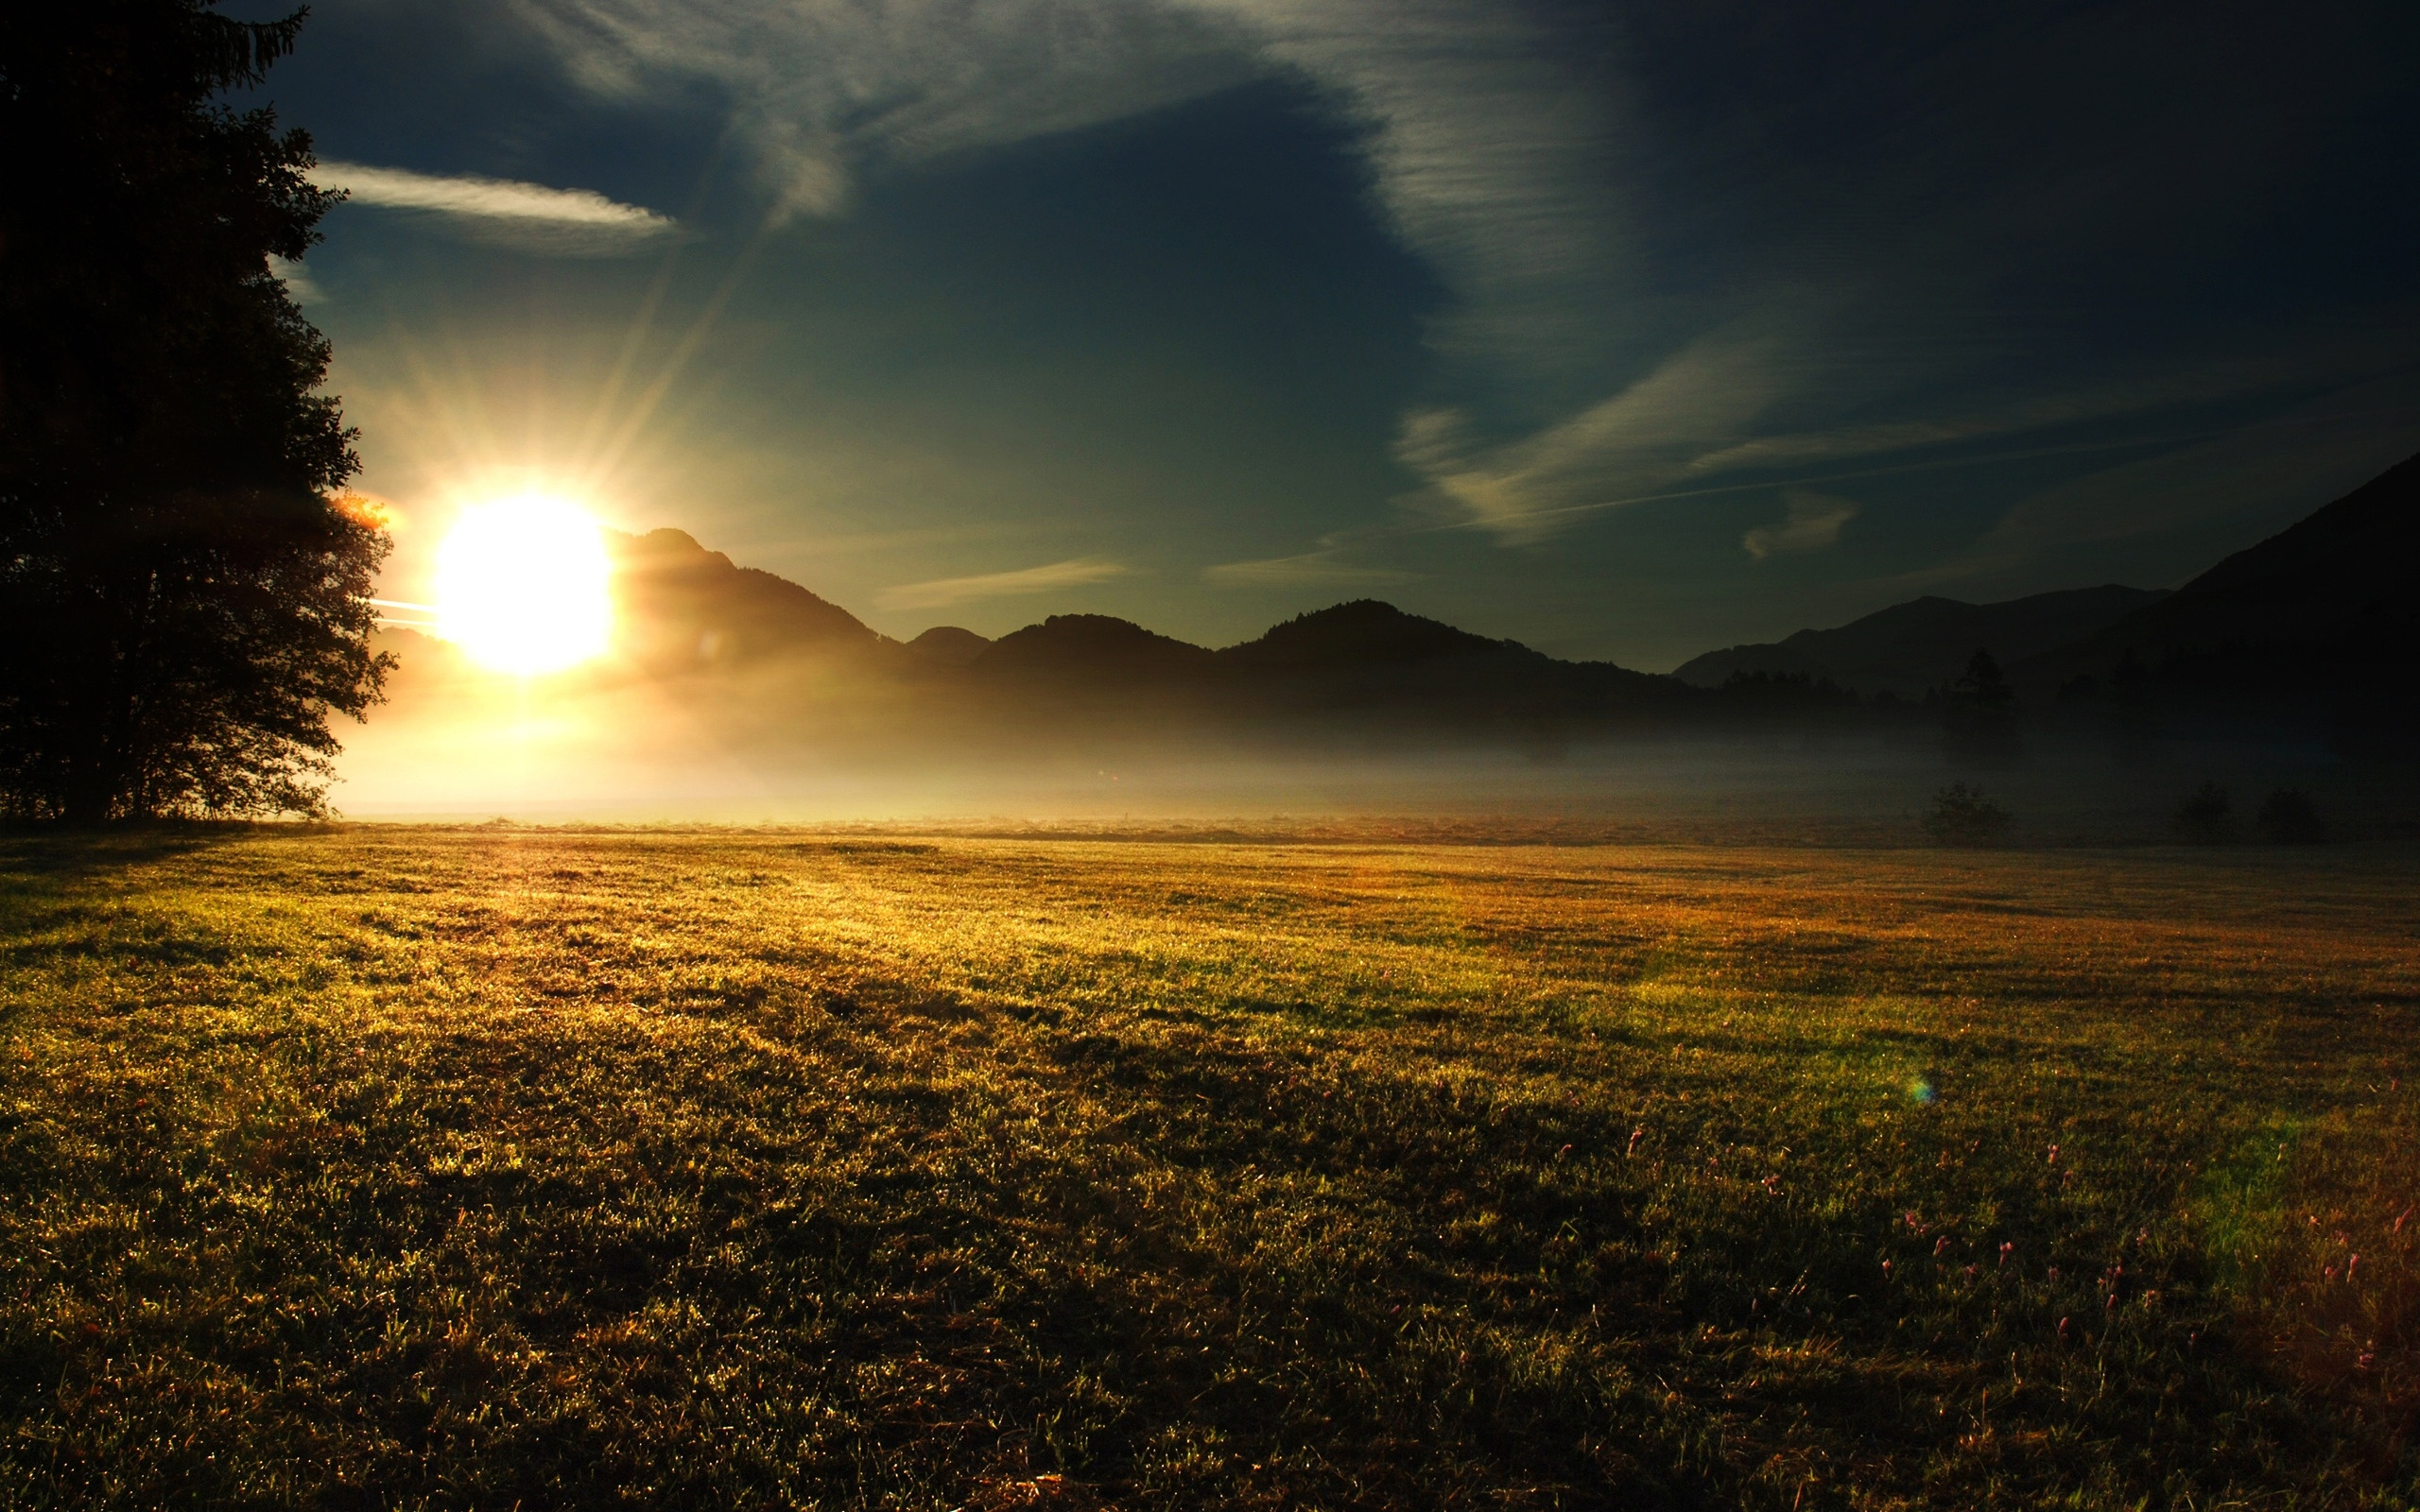 Sunrise Landscape Wallpaper Hd Images 3 HD Wallpapers